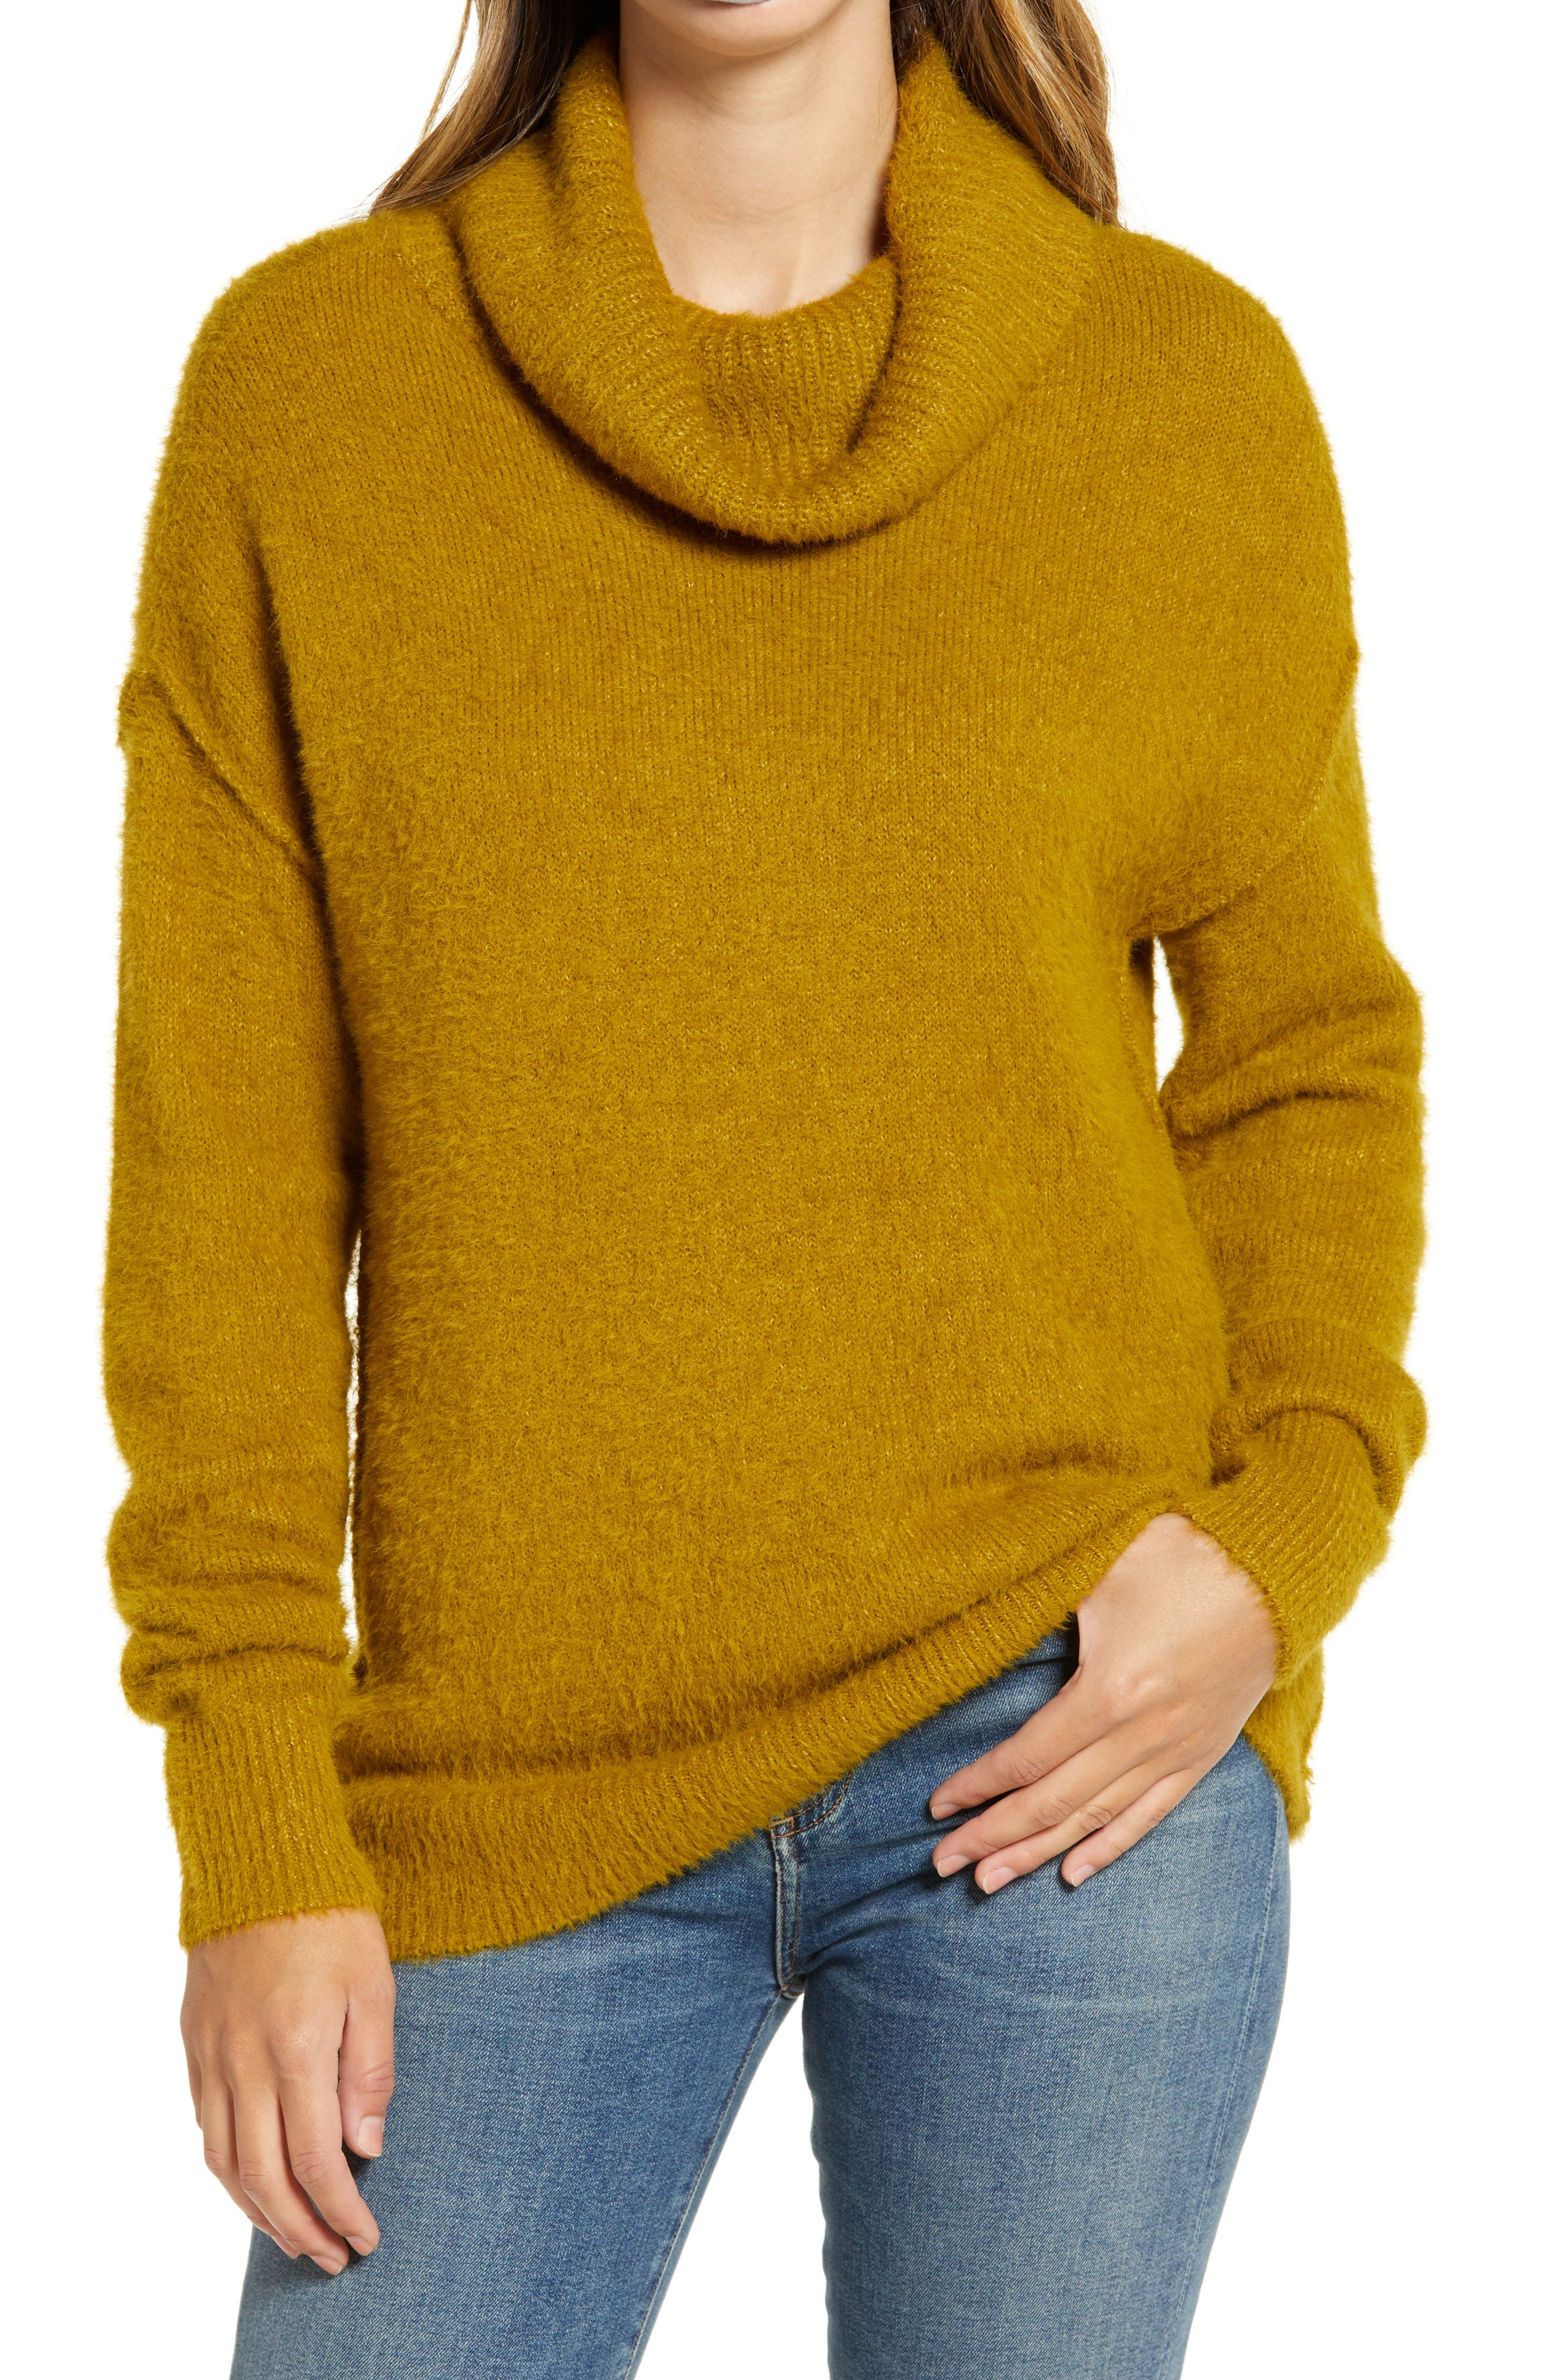 Soft chenille yarn enhances the comfy-chic vibe of this drop-shoulder turtleneck sweater designed in a bum-covering length. Style Name: Caslon Turtleneck Sweater. Style Number: 5793096. Available in stores.